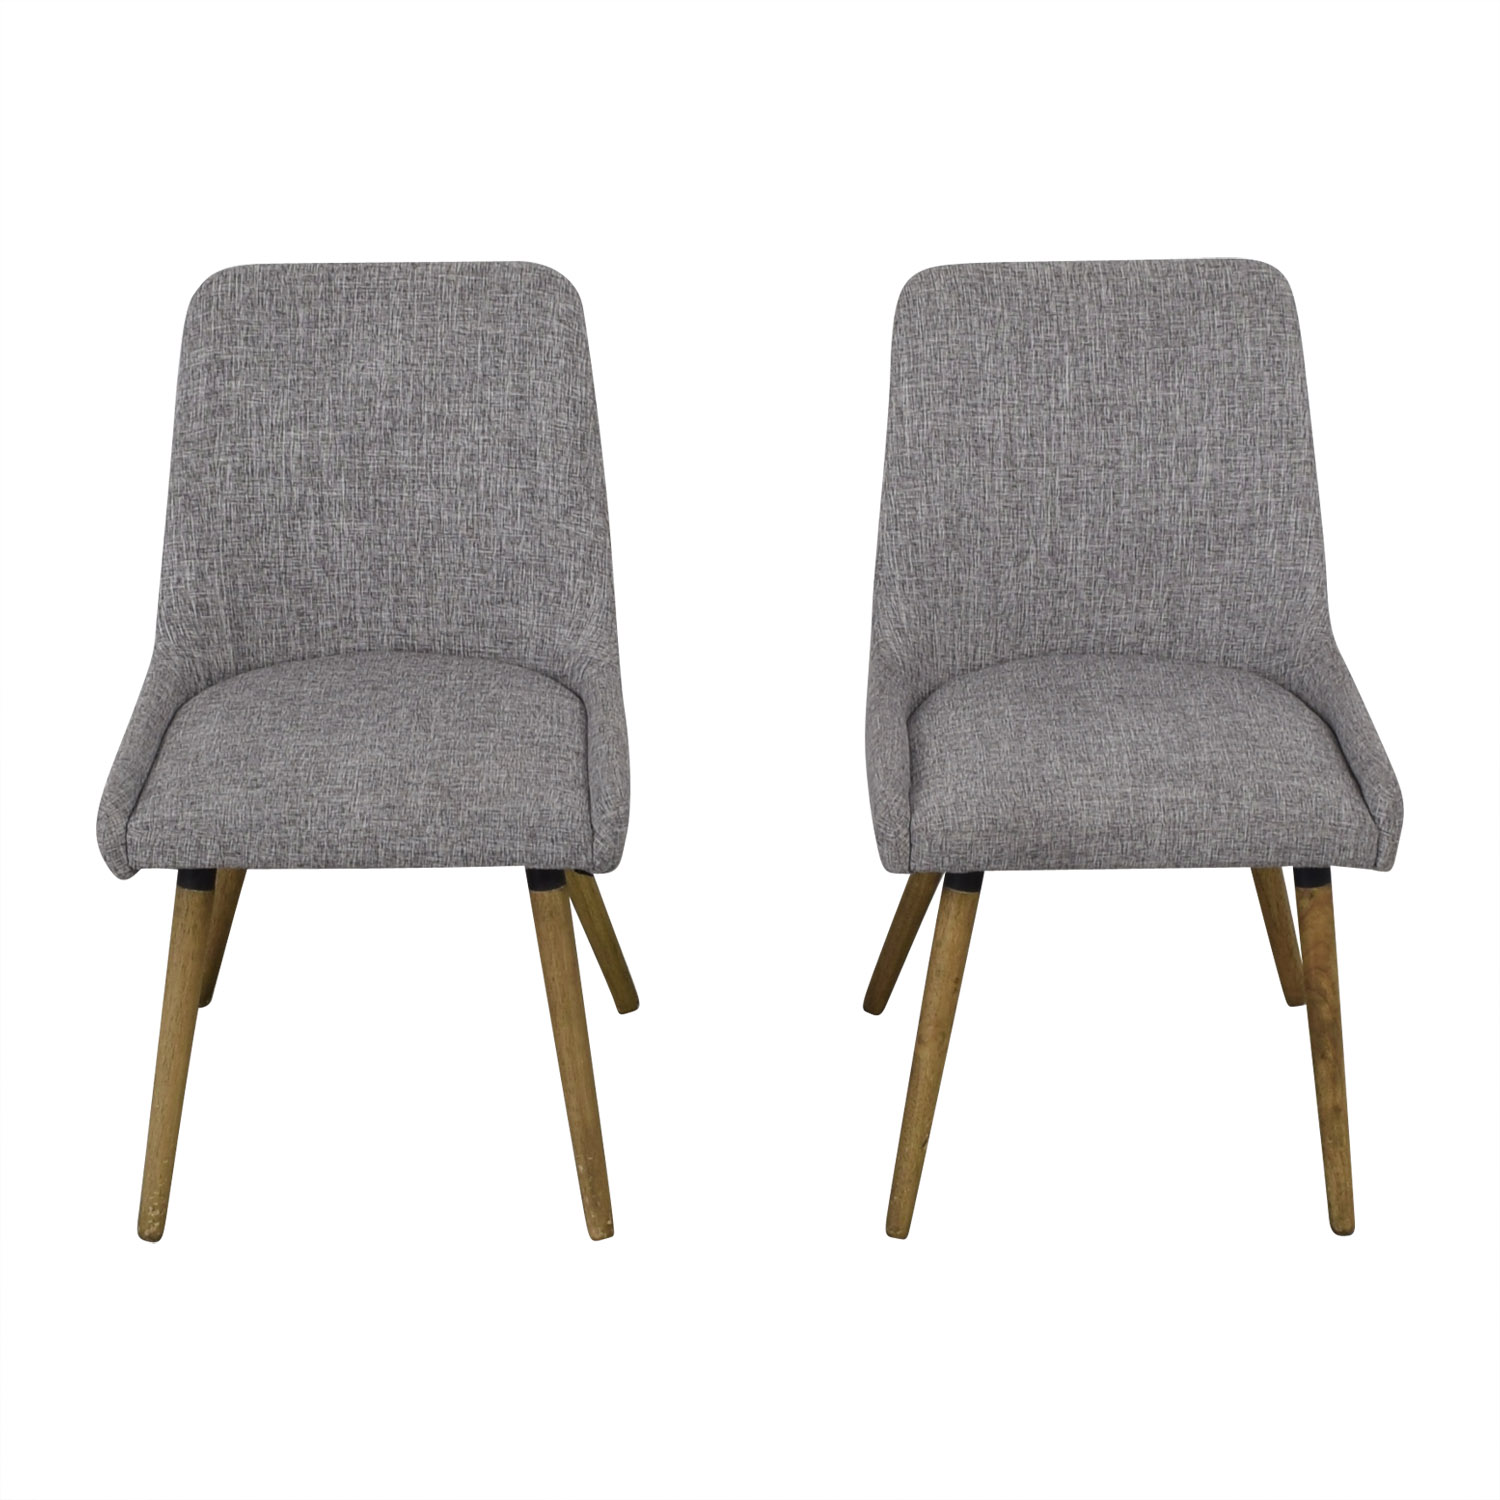 West Elm West Elm Mid-Century Upholstered Dining Chairs price